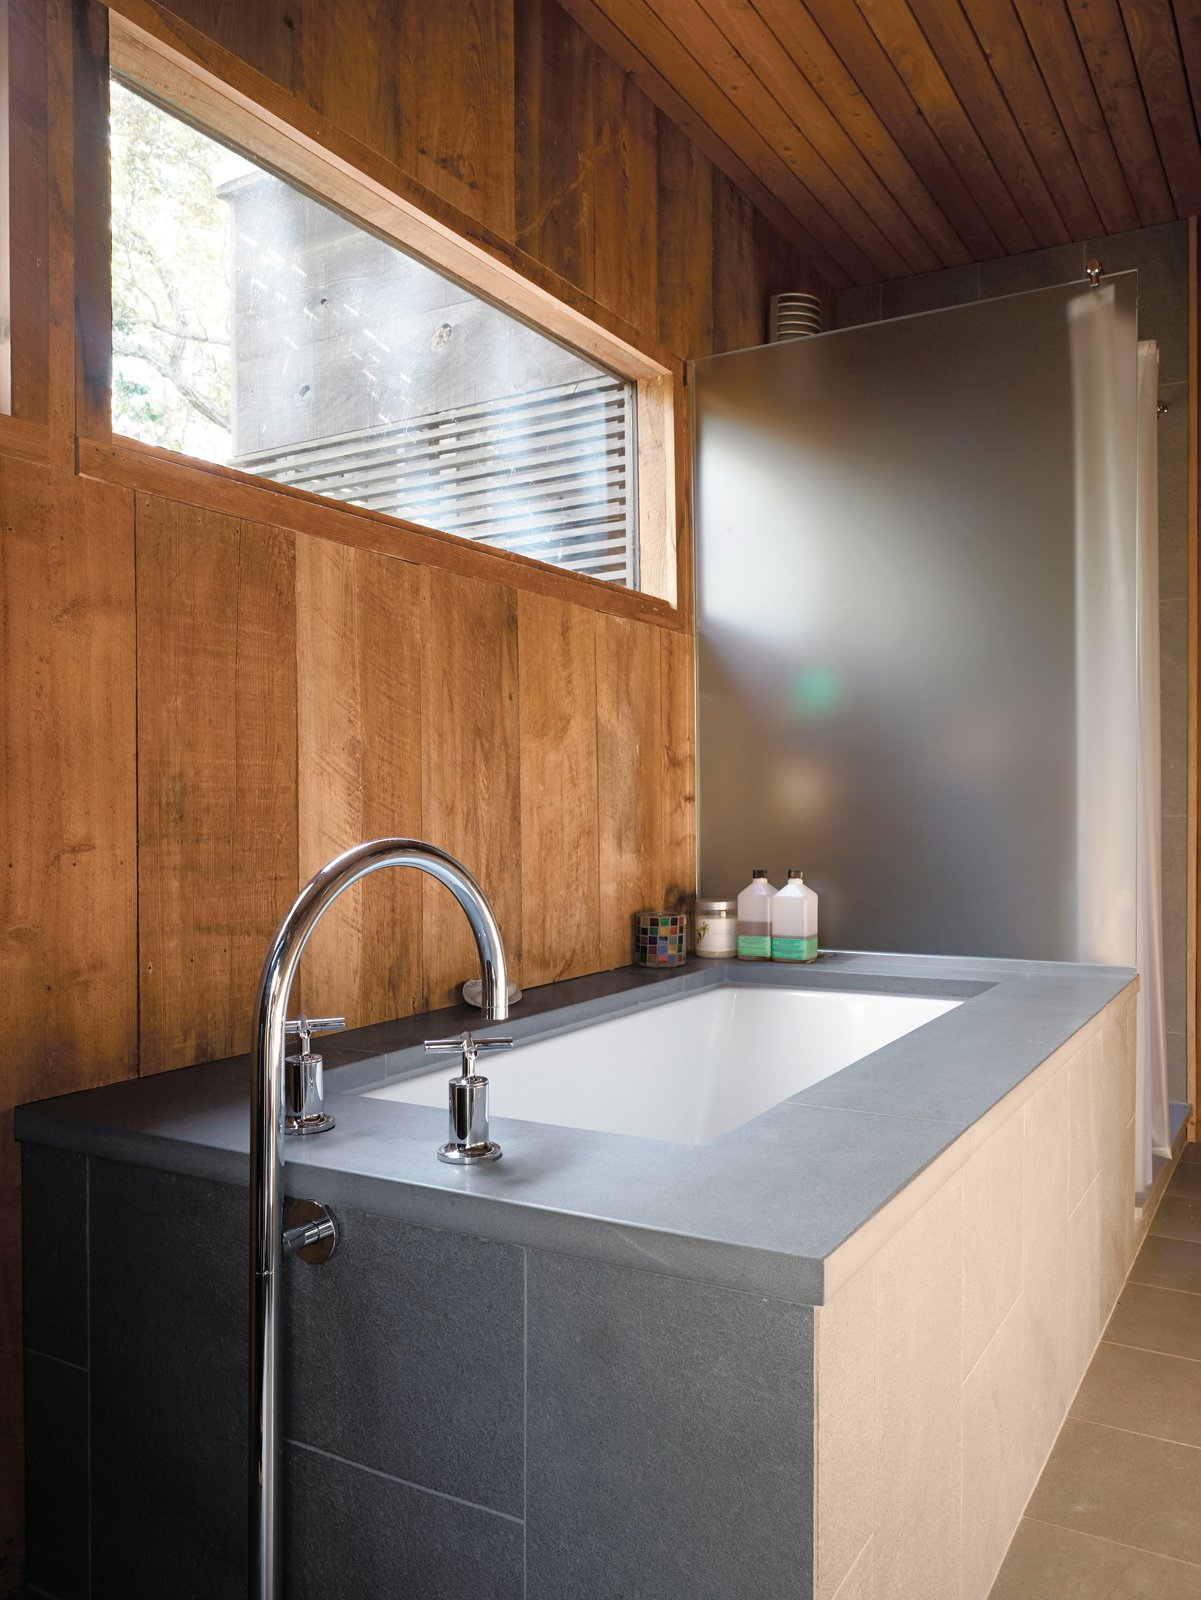 Photo 15 of 17 in Long Island Summer Home Gets a Modern Addition - Dwell